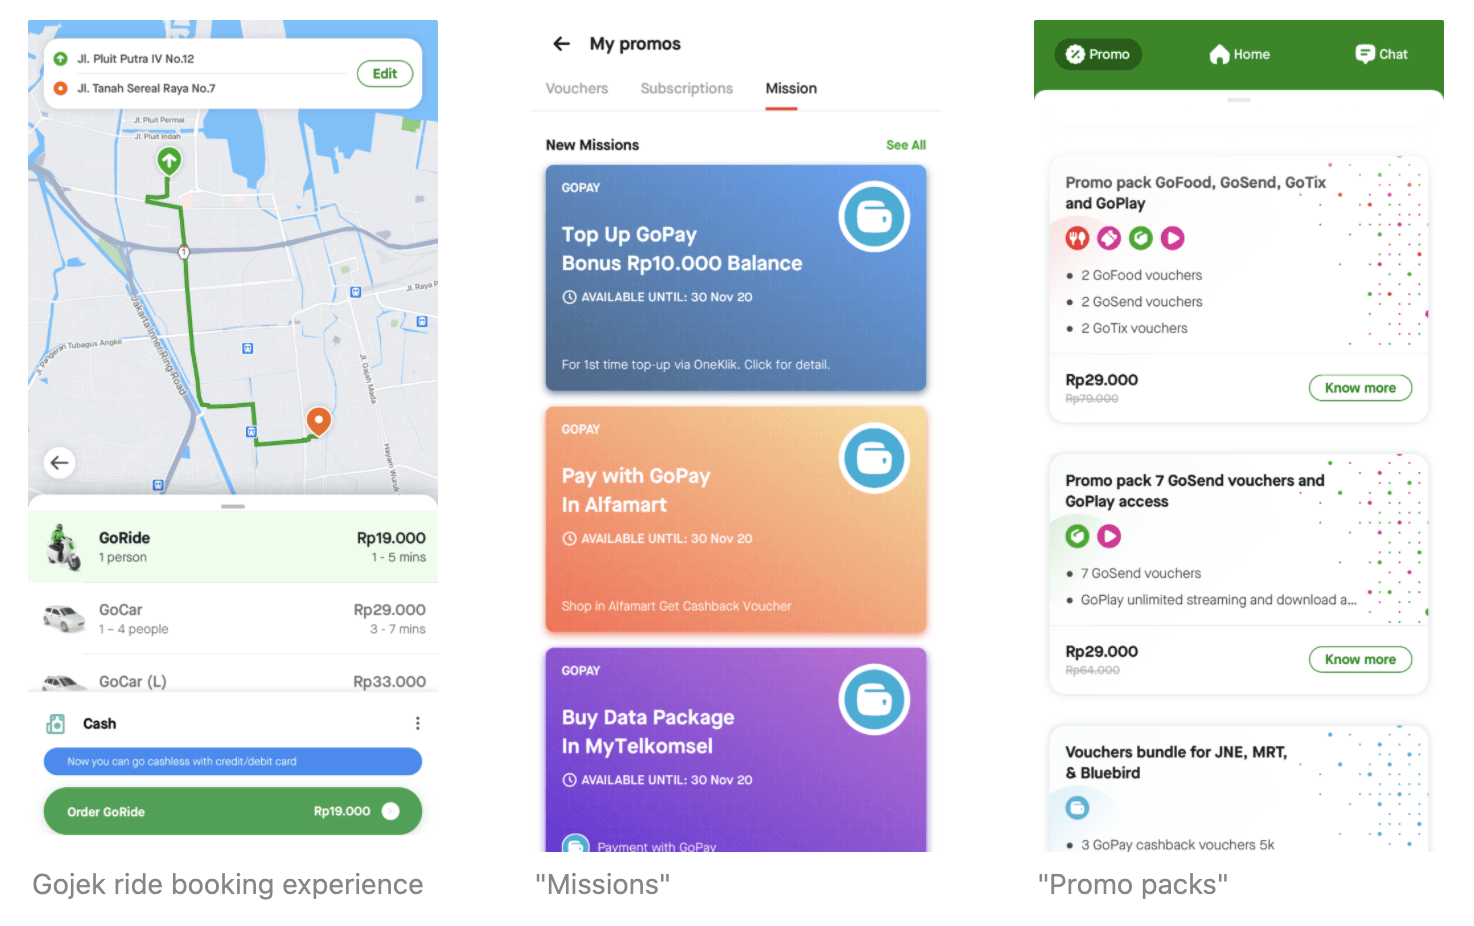 """Three screenshots of the Gojek app showing 1) the Gojek ride booking experience, 2) Gojek """"Missions"""" which are tasks for consumers to buy things through the app such as mobile airtime that are time-bound and 3) """"Promo packs"""" which are bundled offerings of various Gojek vouchers for a discounted price"""